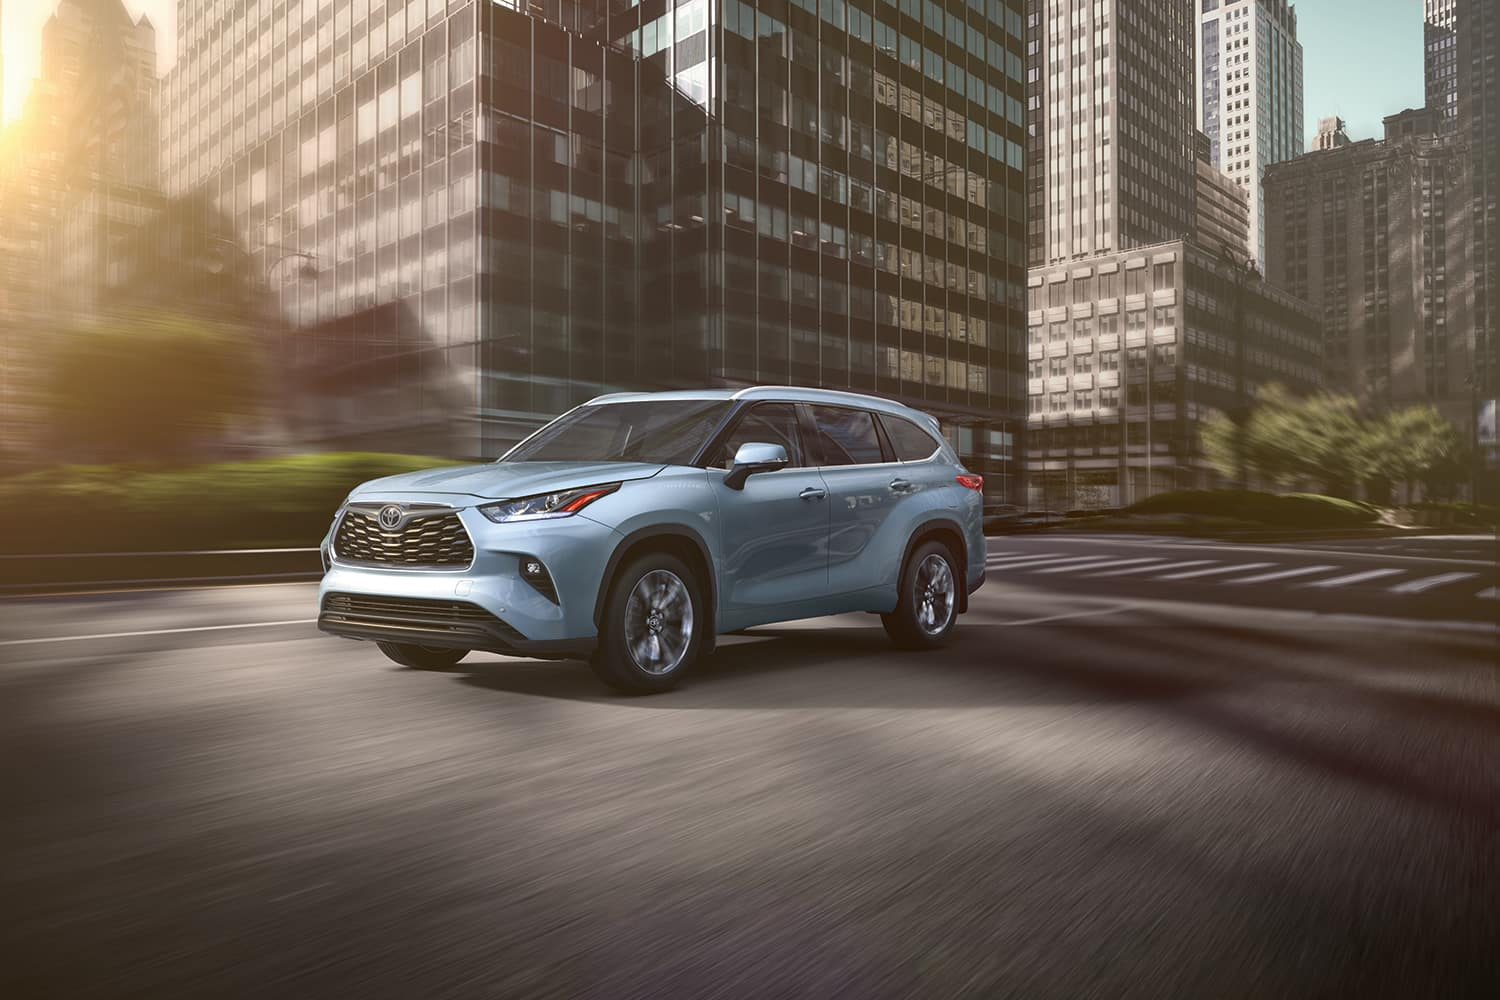 Lancaster Toyota is a Car Dealership in Lancaster near Wrights Ferry or Columbia PA | 2020 Toyota Highlander driving through city